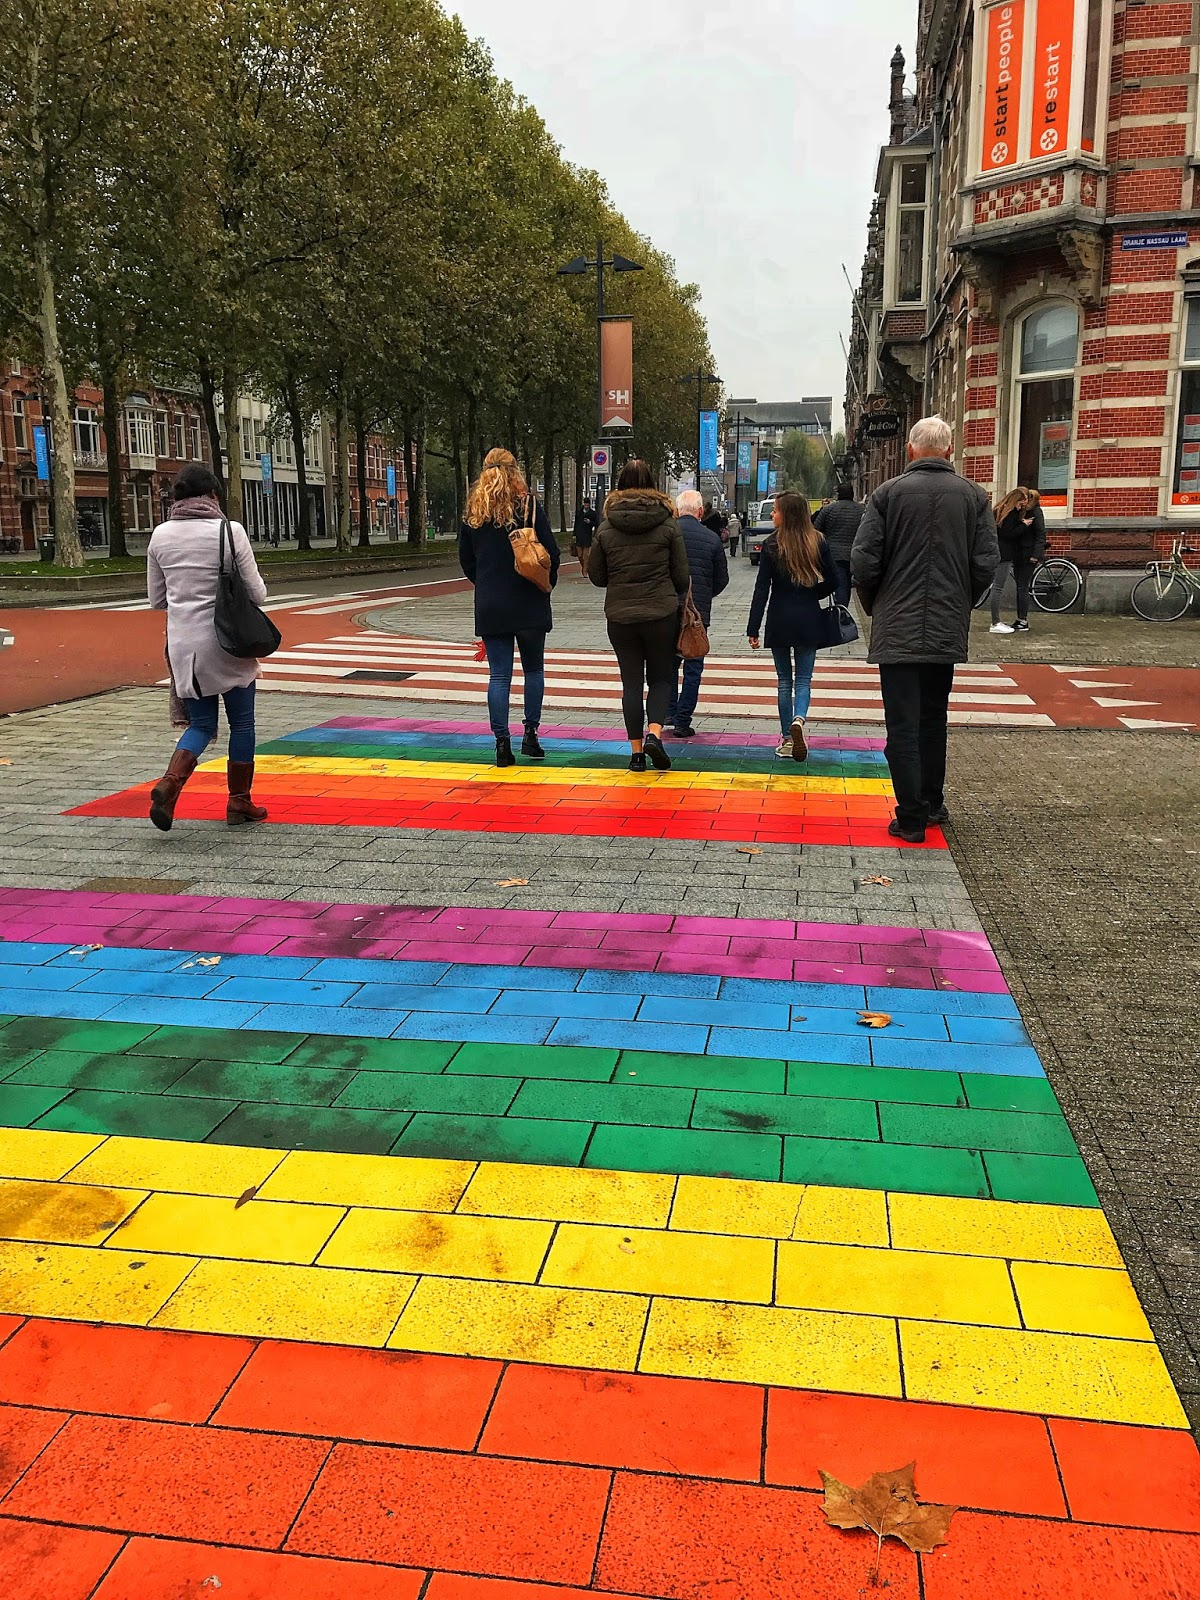 Colourful city streets of Den Bosch